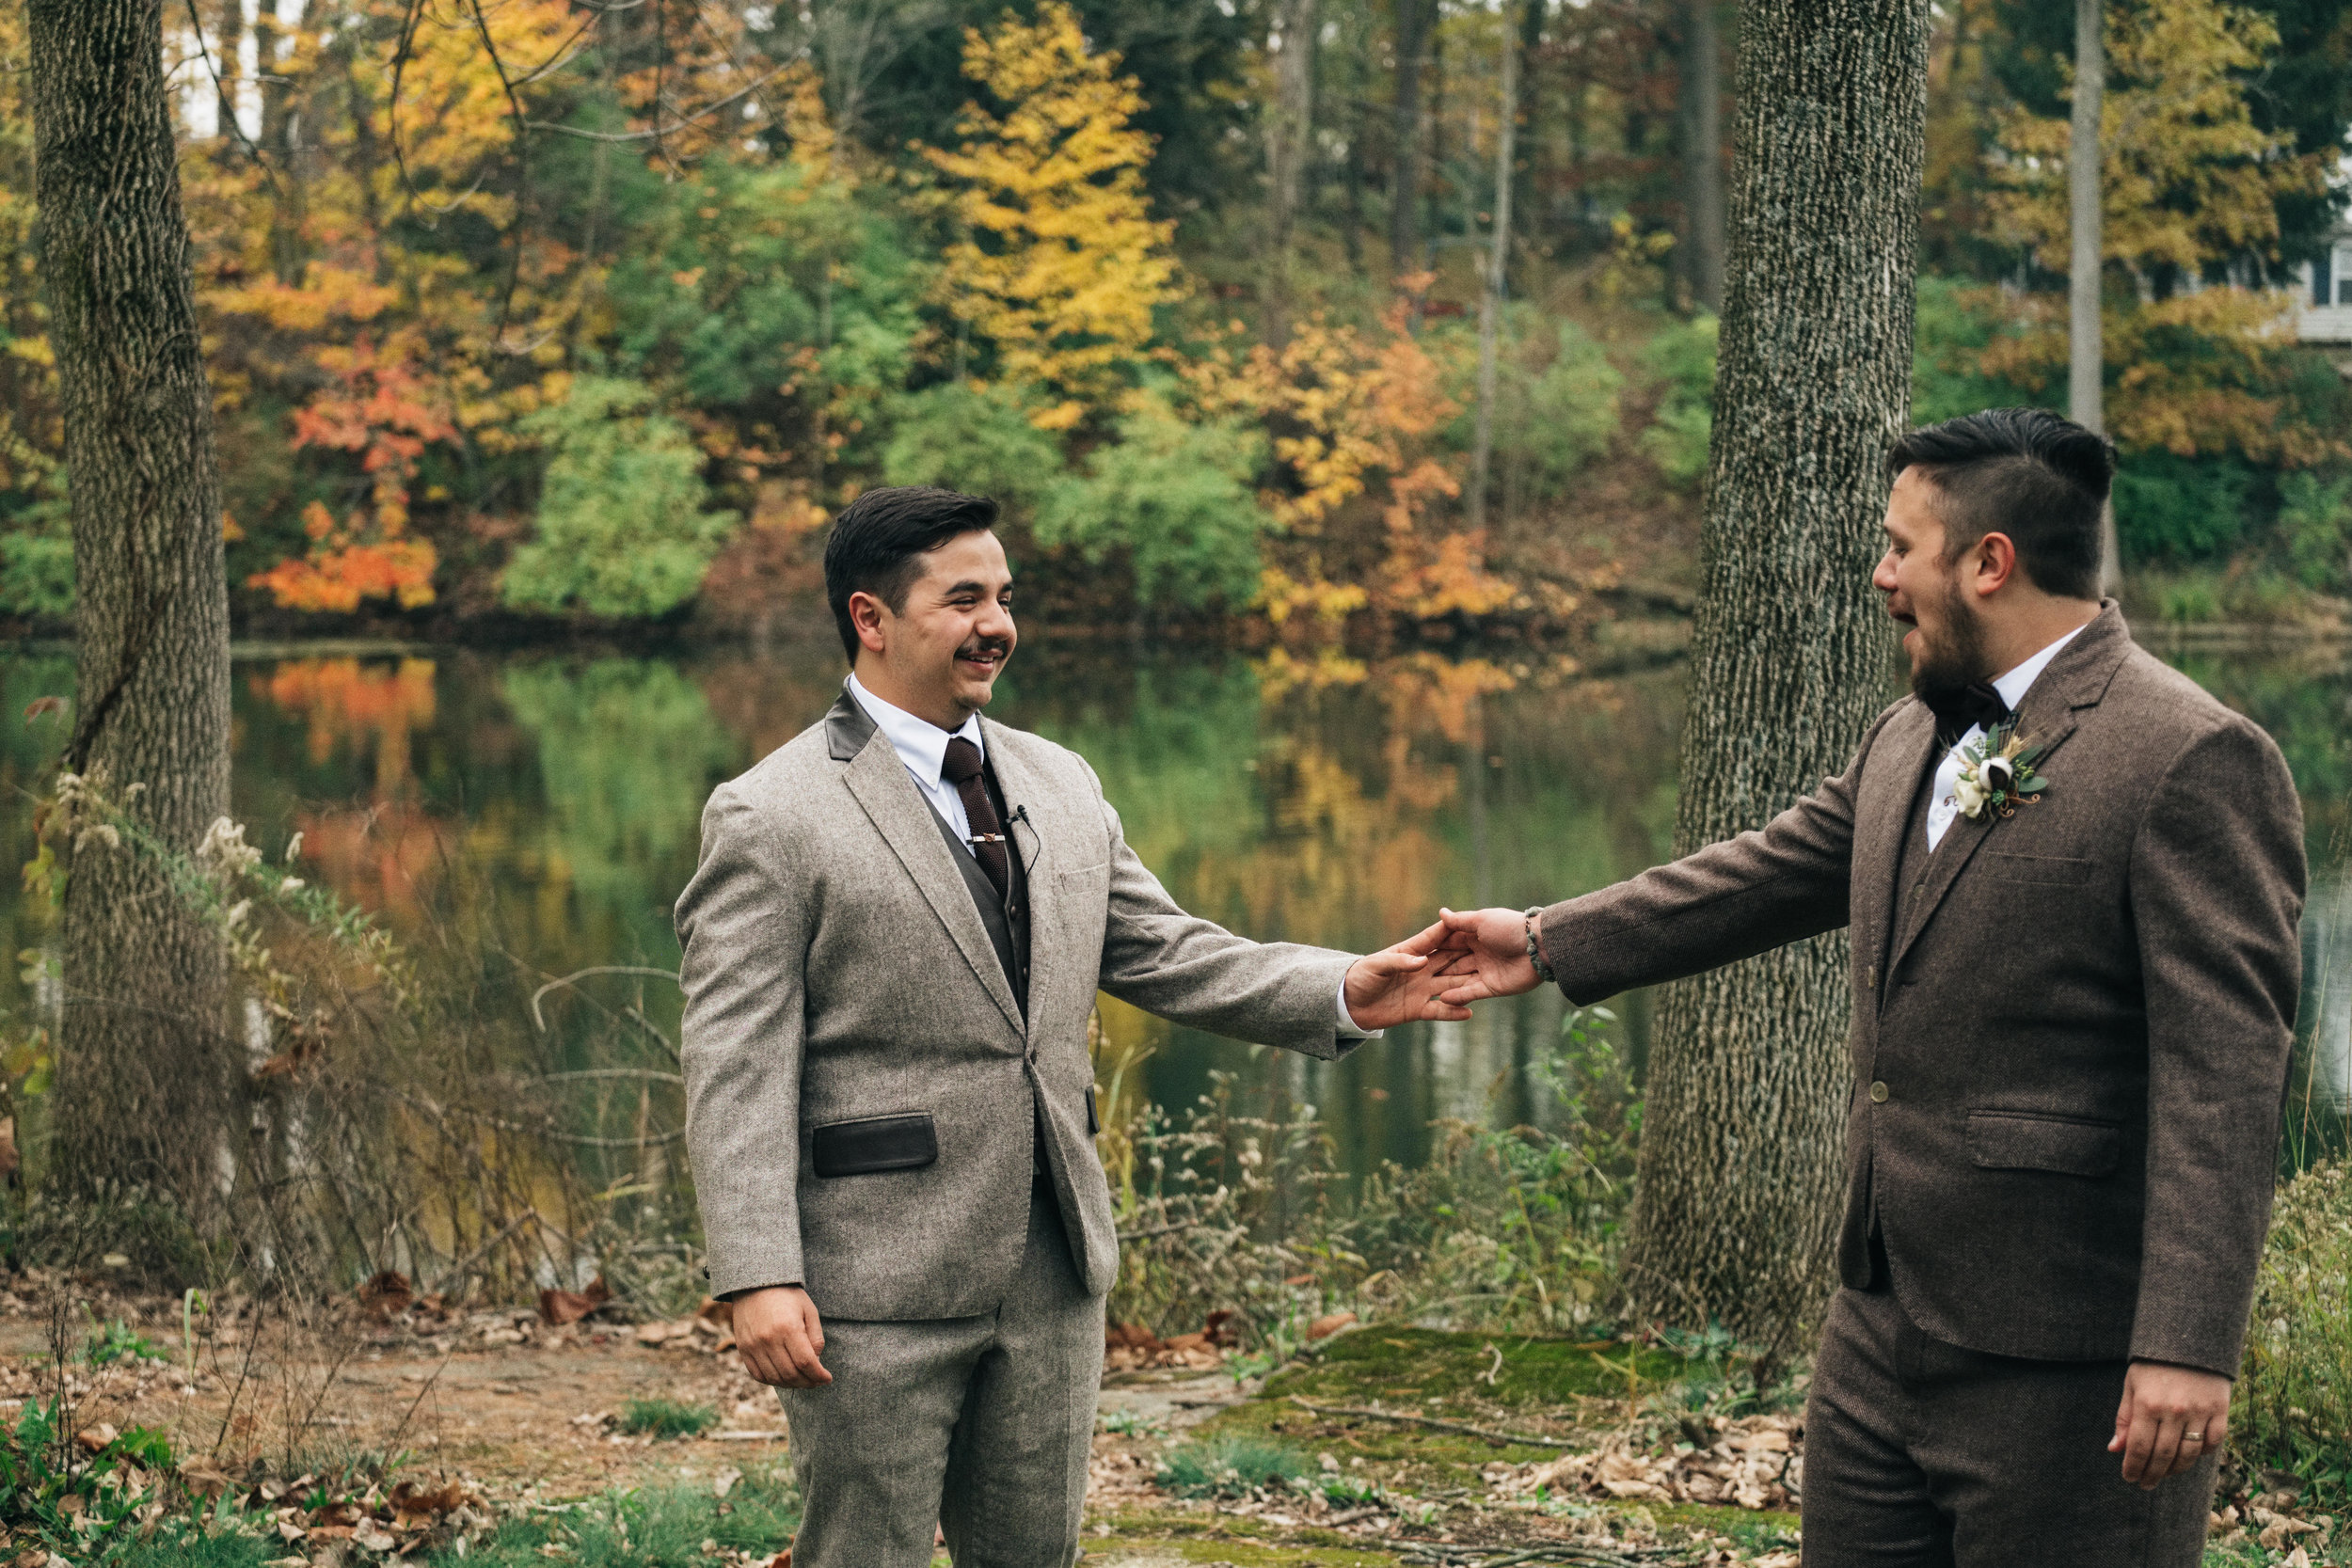 Same Sex Couple Shares First Look on Wedding Day in Ohio With Toledo Wedding Photographers